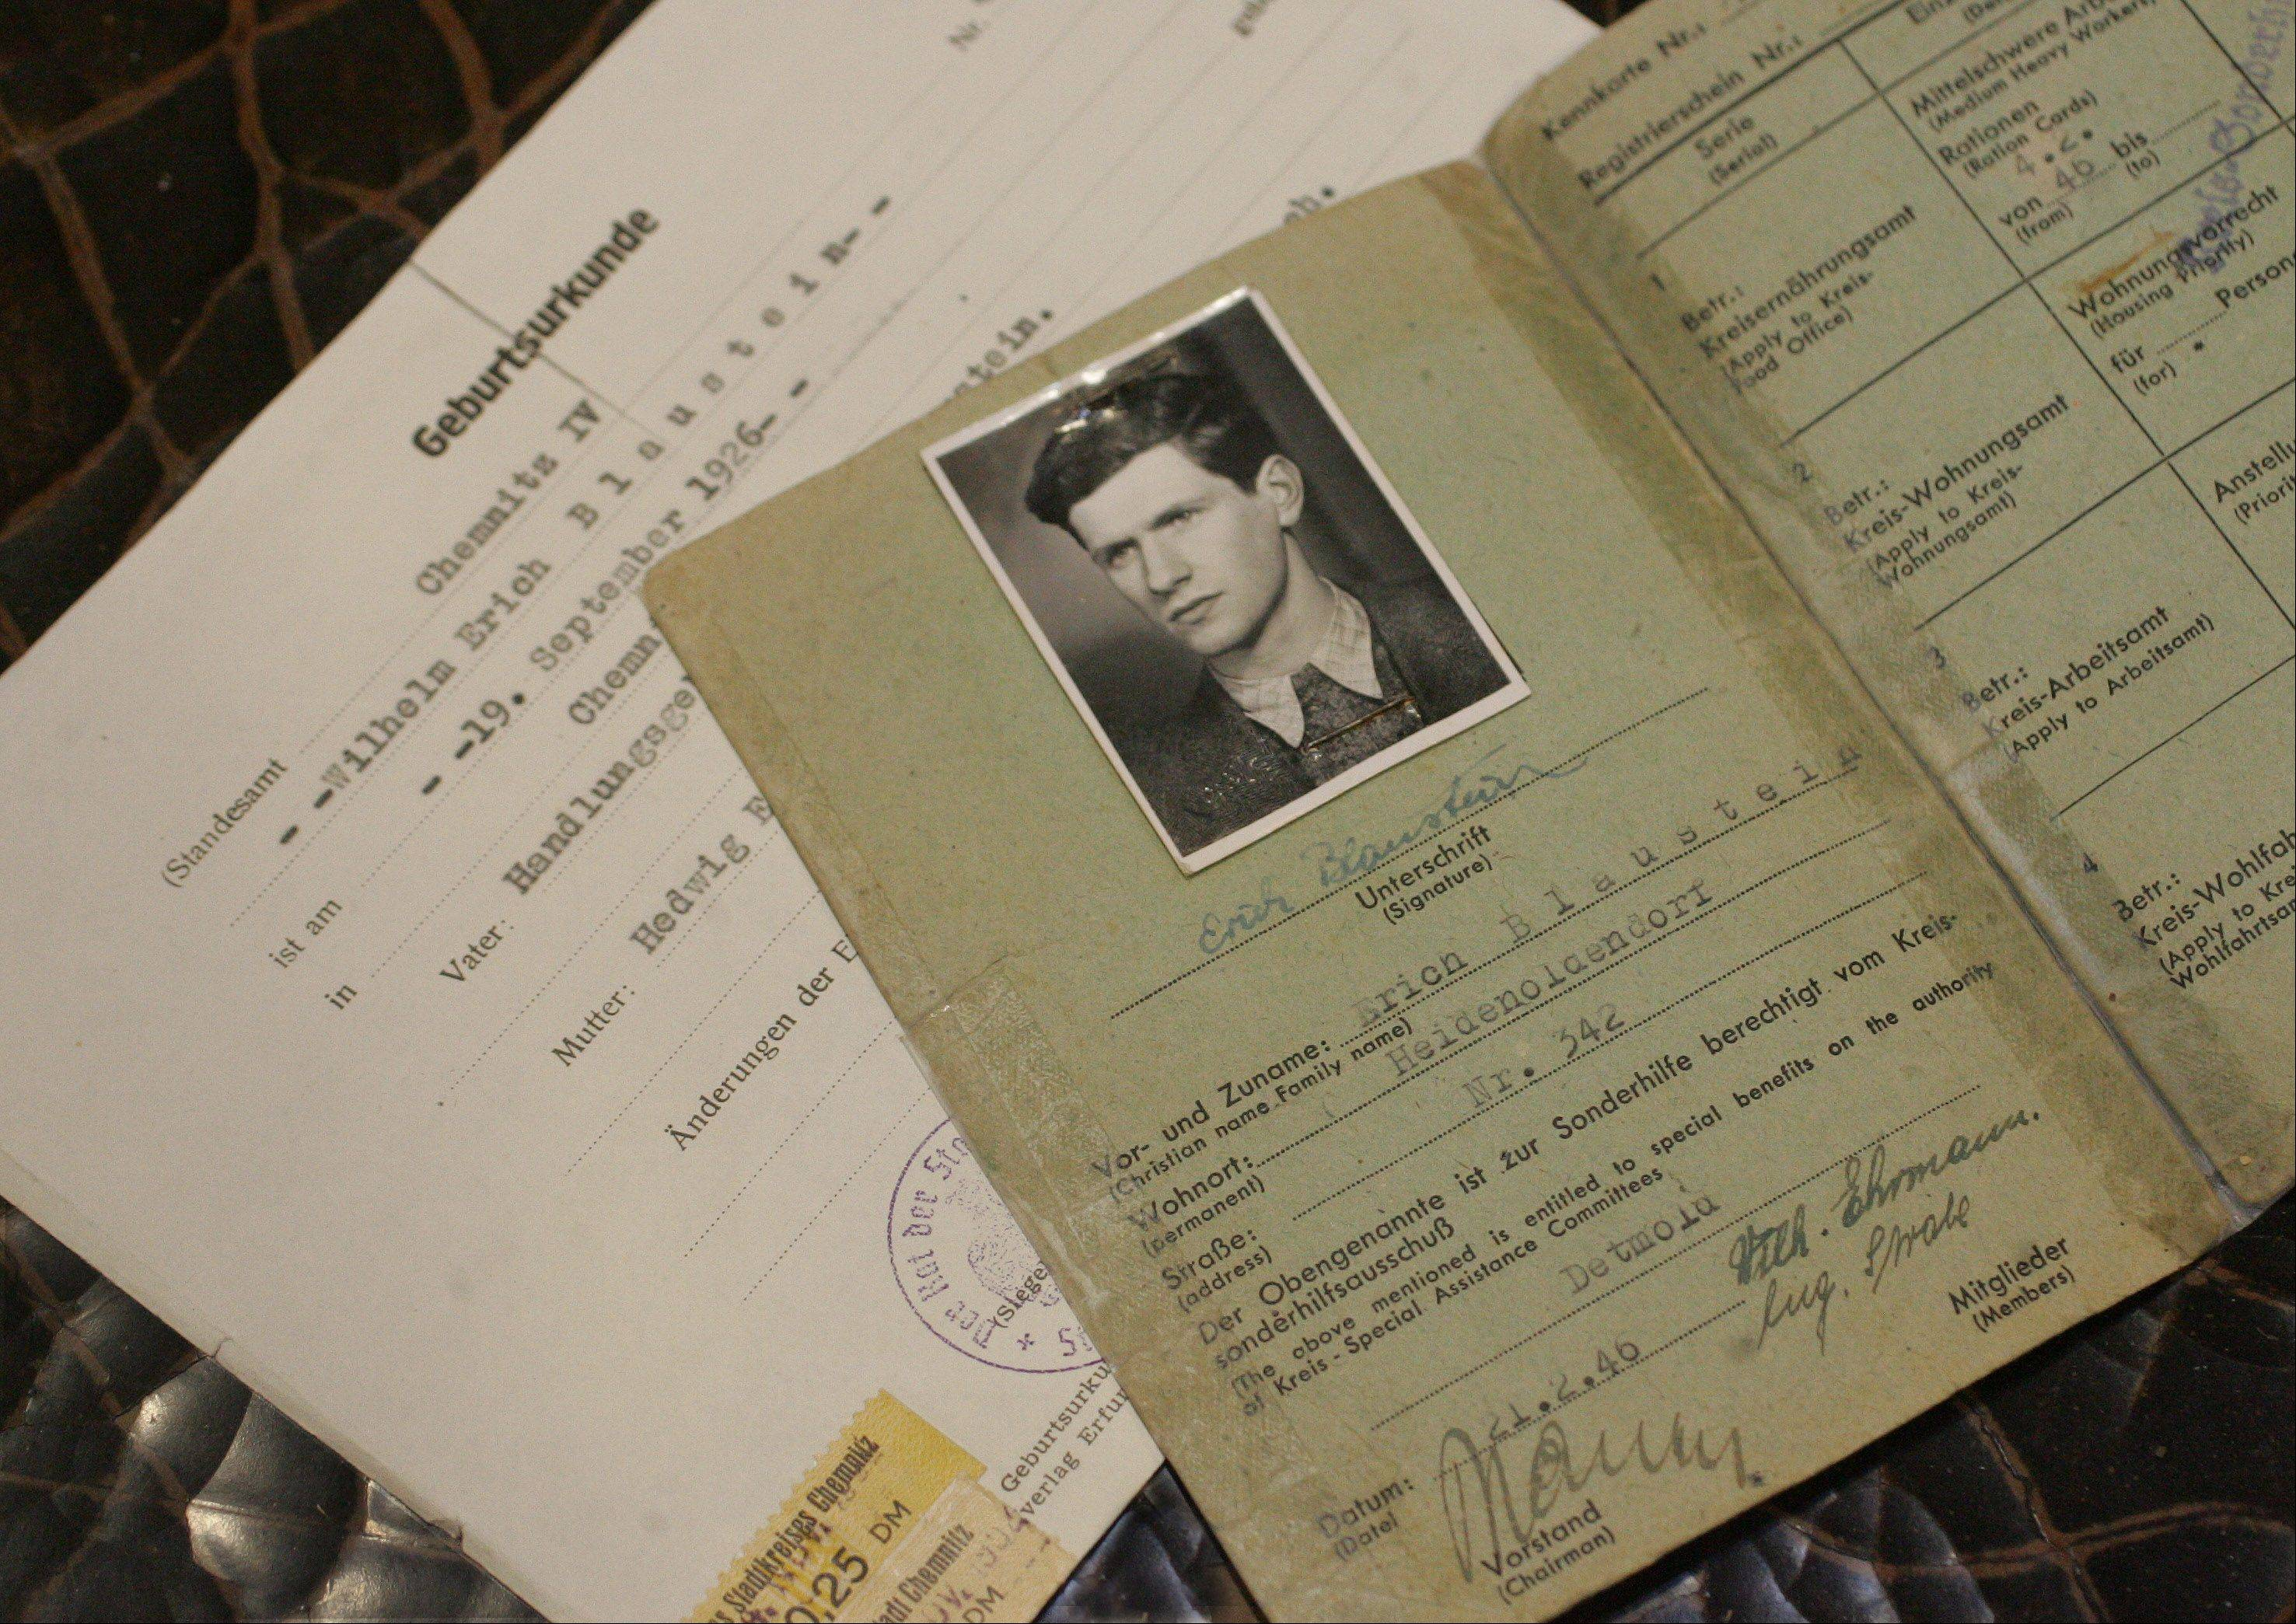 The birth certificate and German identification papers of Holocaust survivor Eric Blaustein, of Vernon Hills. He was arrested at 17 by the Nazis and spent time in Buchenwald prison camp during World War II. Blaustein will speak Wednesday at Harper College about his ordeal.